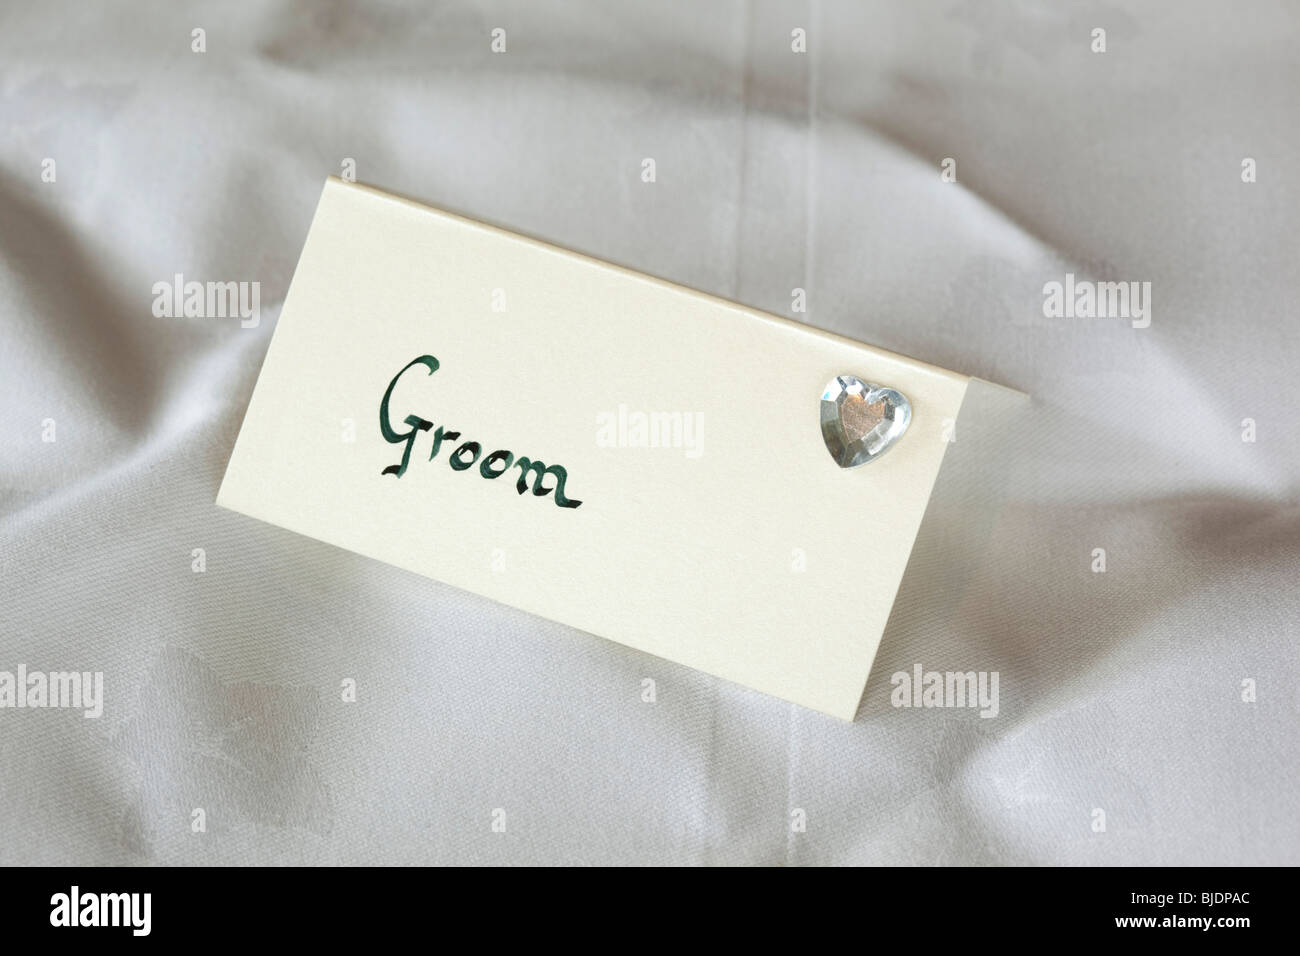 Hand written card grooms table place setting with tiny glass heart, on wedding party table - Stock Image